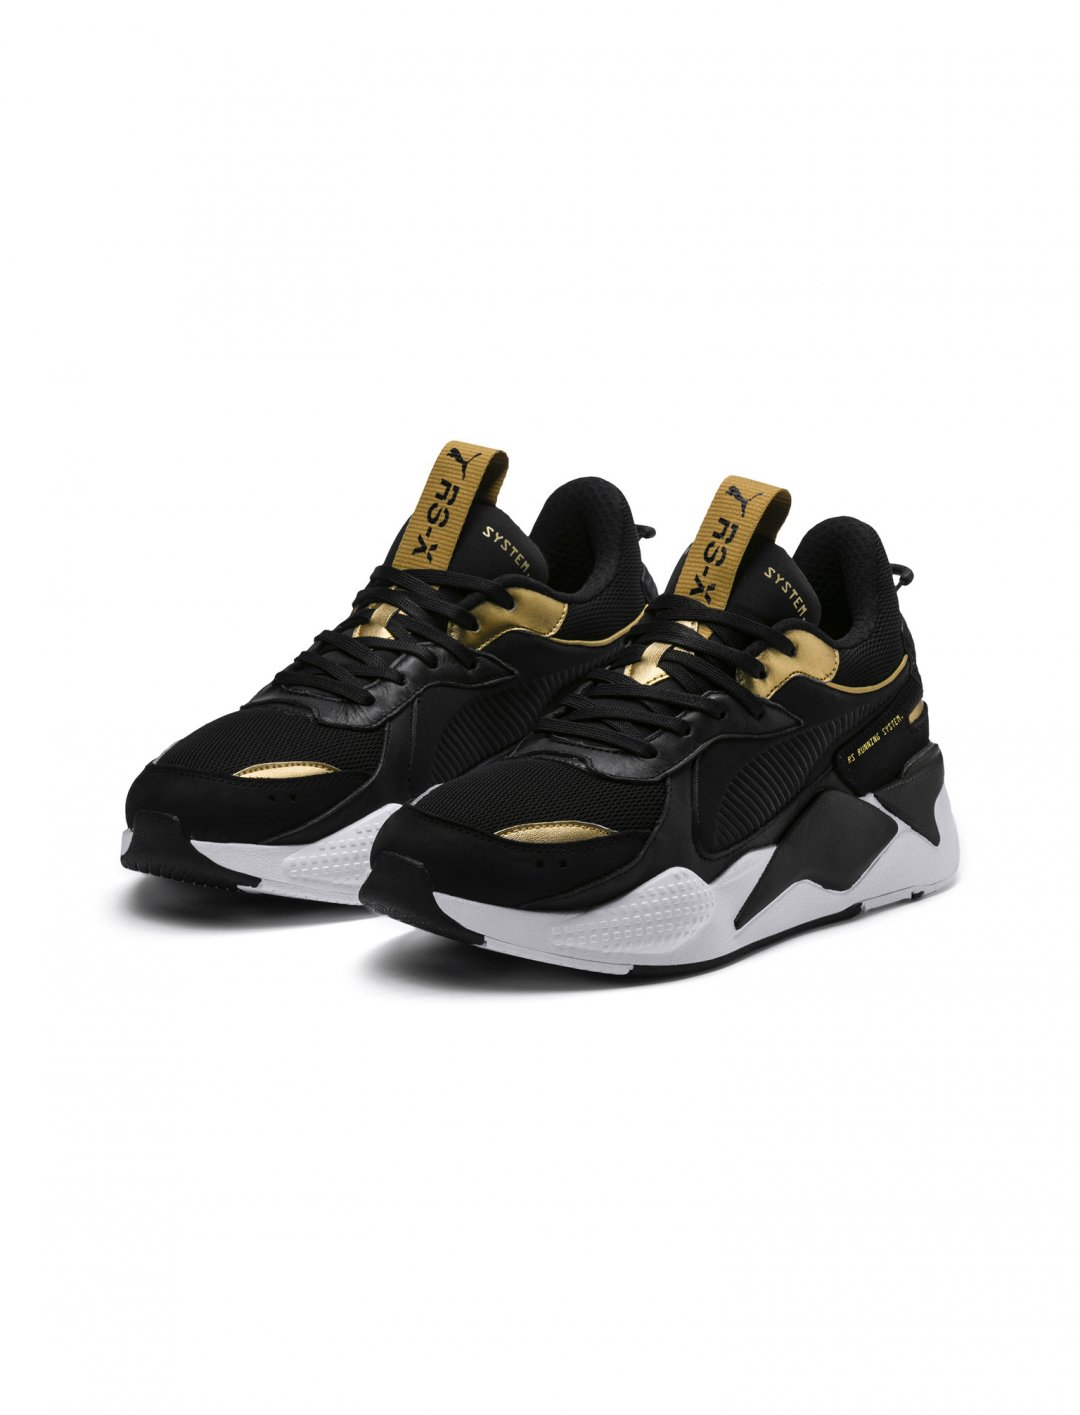 "RS-X TROPHY Sneakers {""id"":5,""product_section_id"":1,""name"":""Clothing"",""order"":5} Puma"